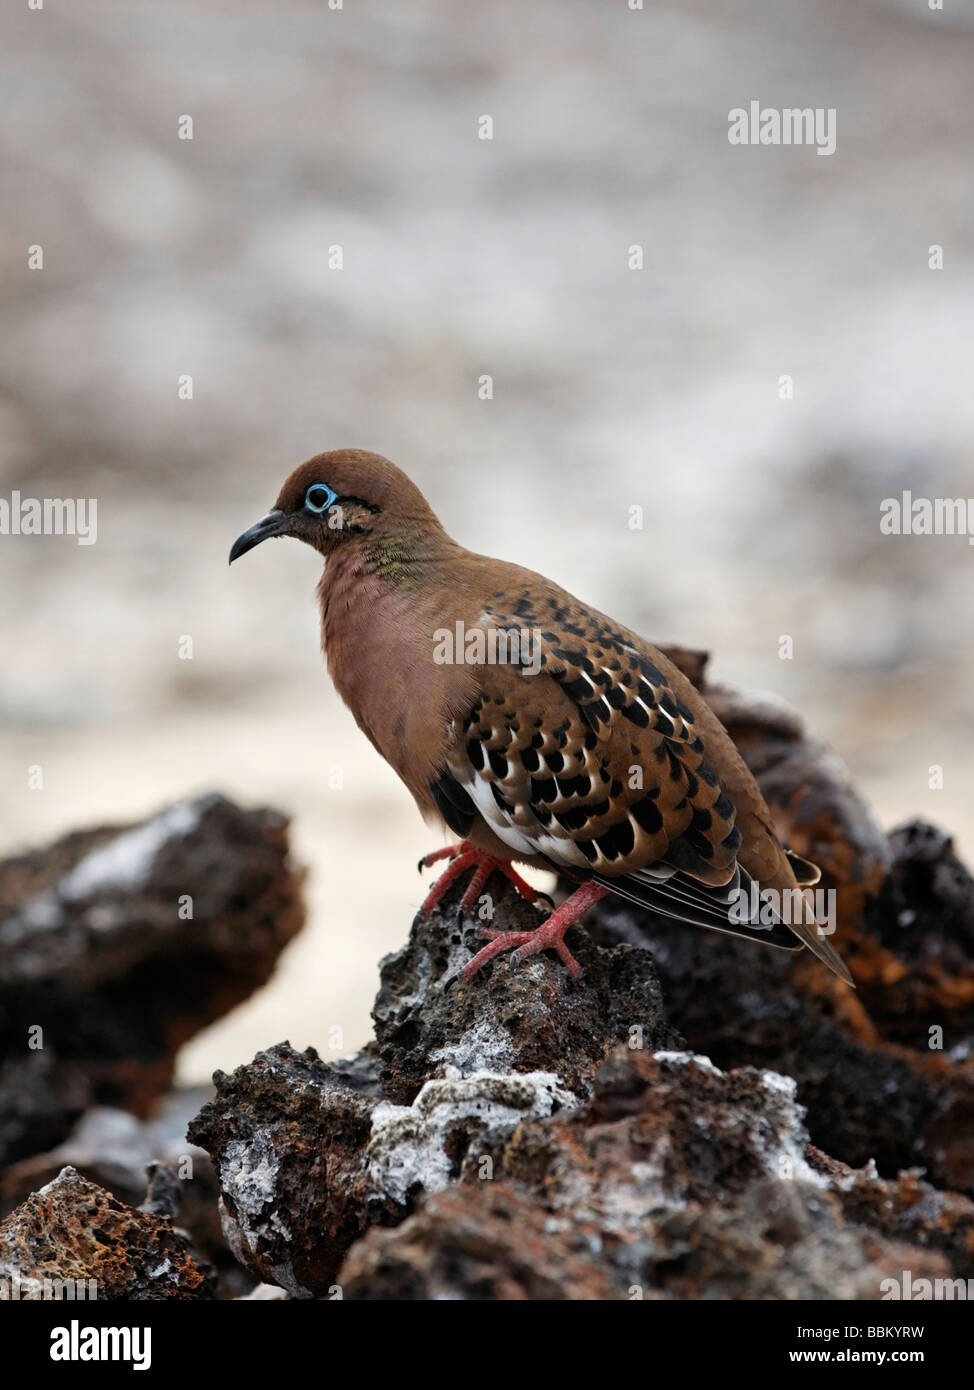 Galápagos dove (Zenaida galapagoensis) with camouflaged coat on a rock, Genovesa Island, Tower Island, Galápagos - Stock Image